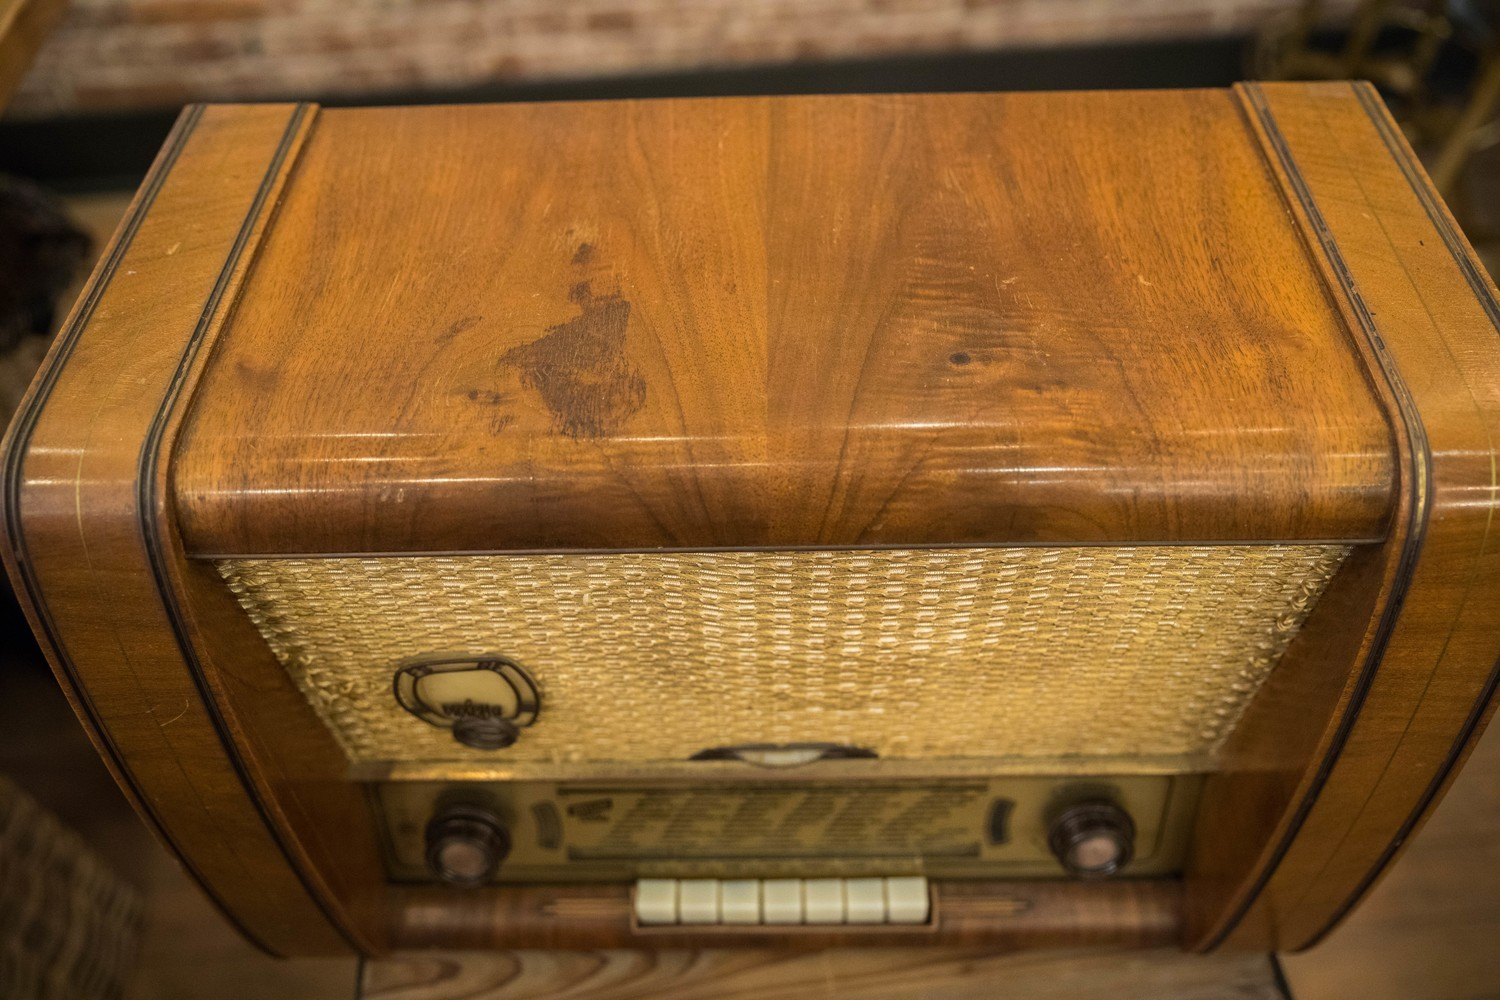 Working 1940's Silvertone Box Radio - Vintage Sears Roebuck Table Top Art Deco 6 Tube Radio Model 8052 Wood Case & Antenna - Antique Radio